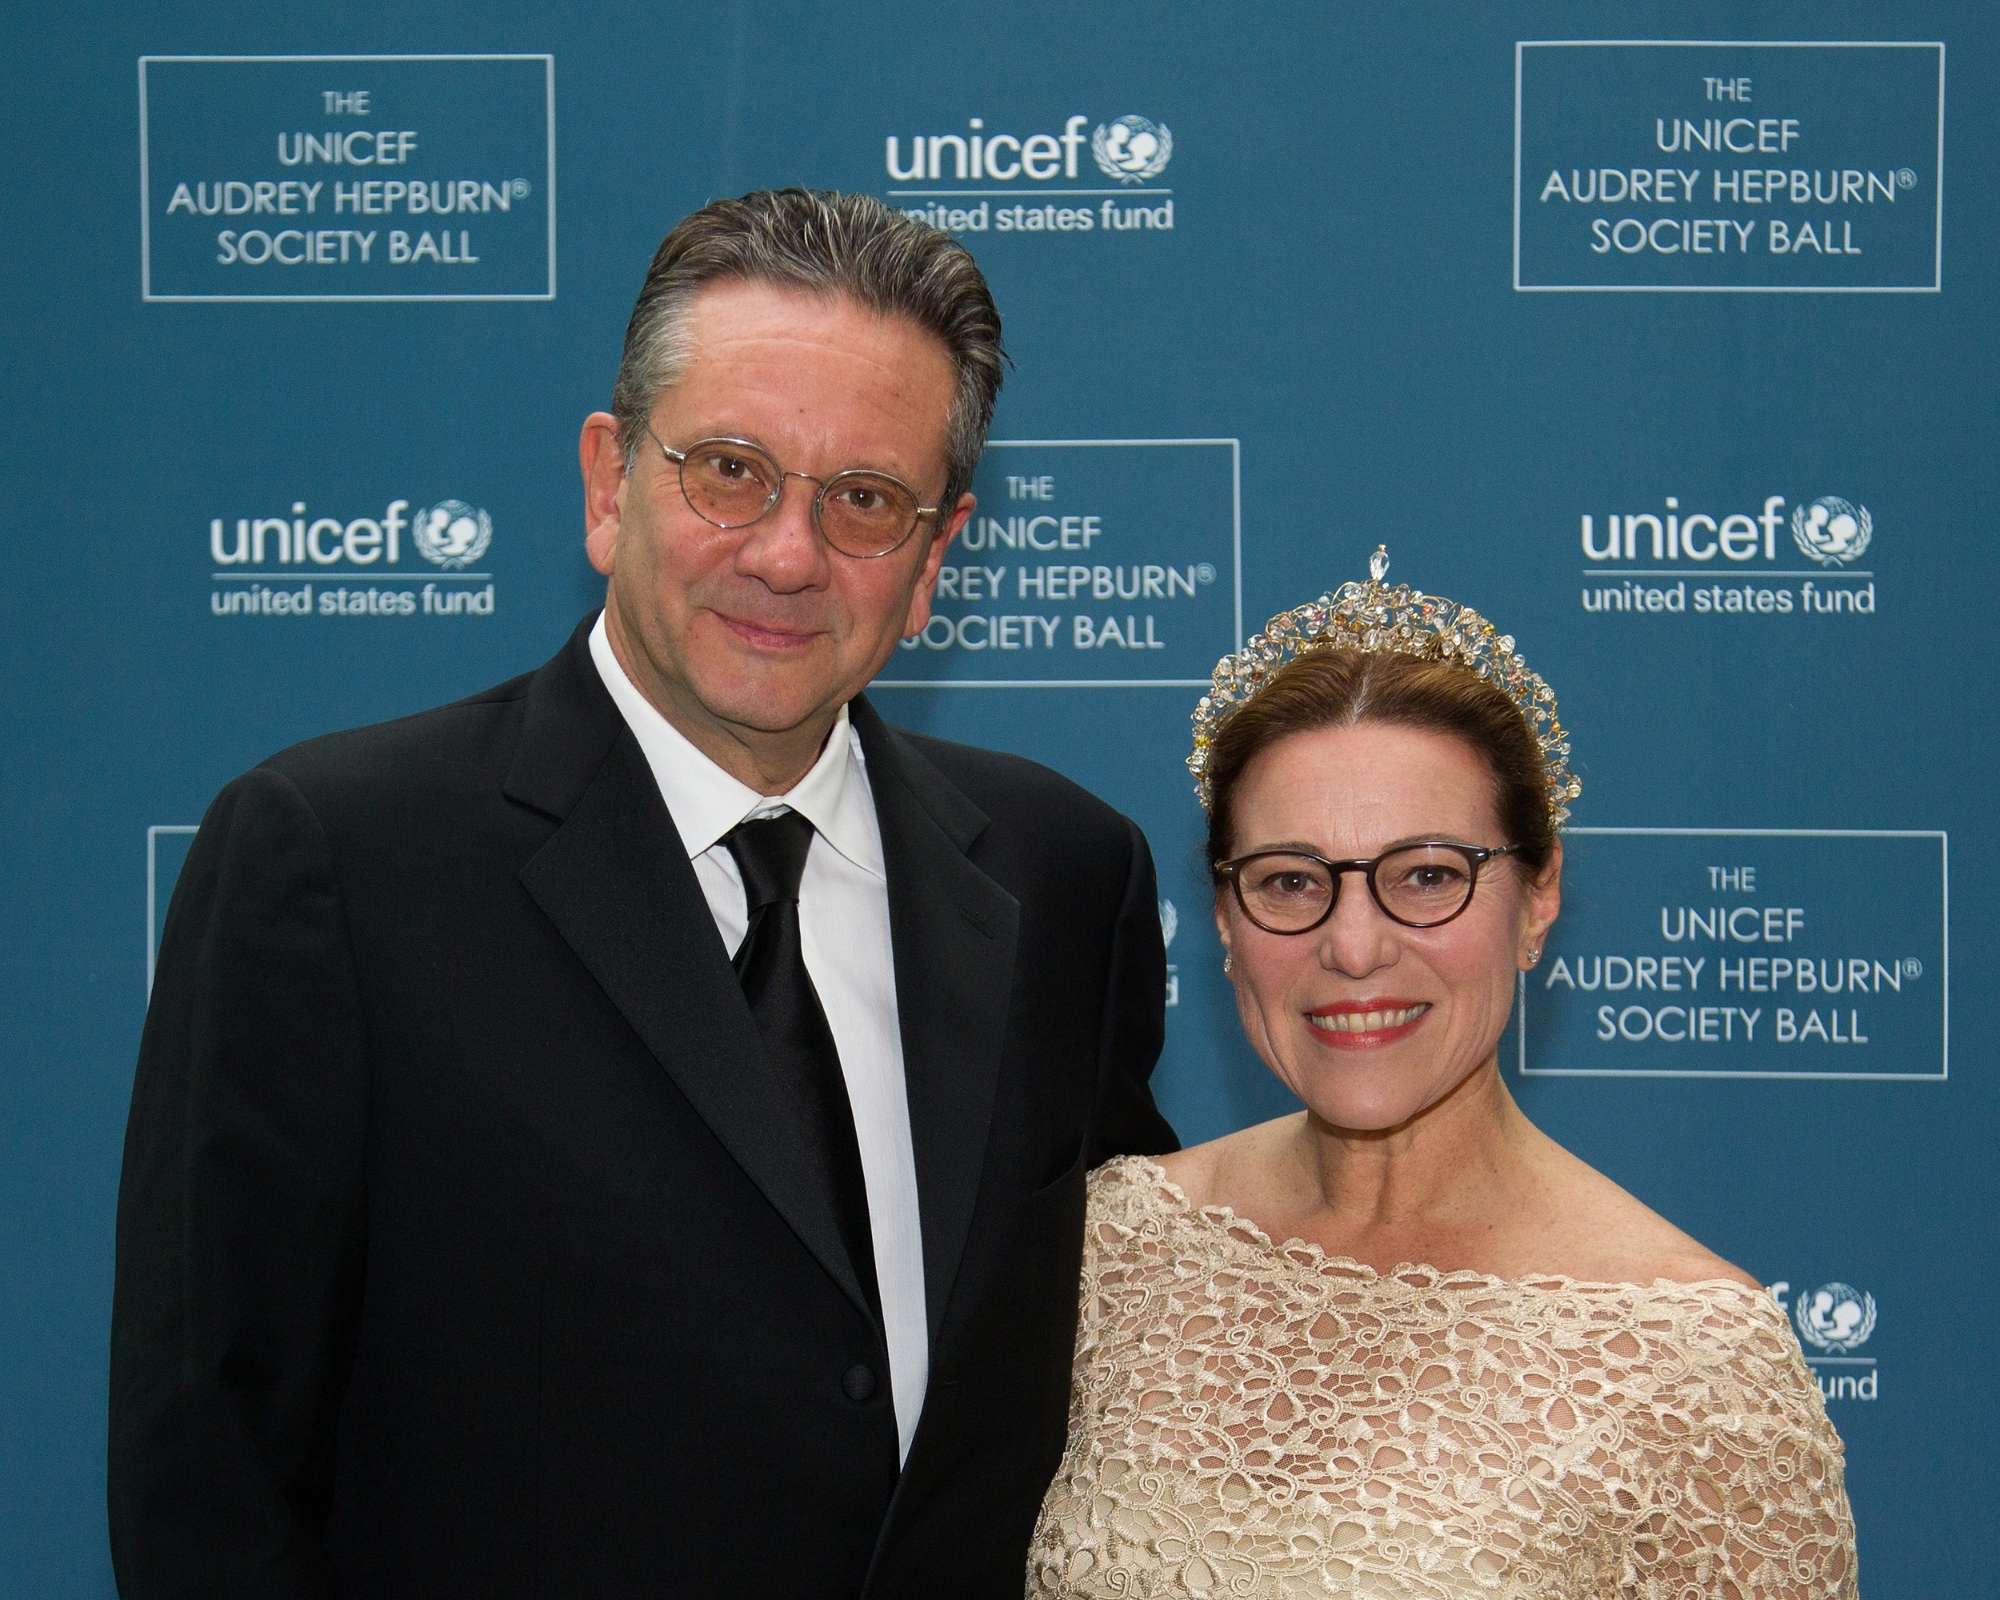 Sean Hepburn Ferrer and Karen Hofer attend The 2nd Annual UNICEF Audrey Hepburn® Society Ball at the Wortham Center on October 14, 2014 in Houston, Texas. (Photo by Bob Levey/Getty Images for U.S. Fund for UNICEF)